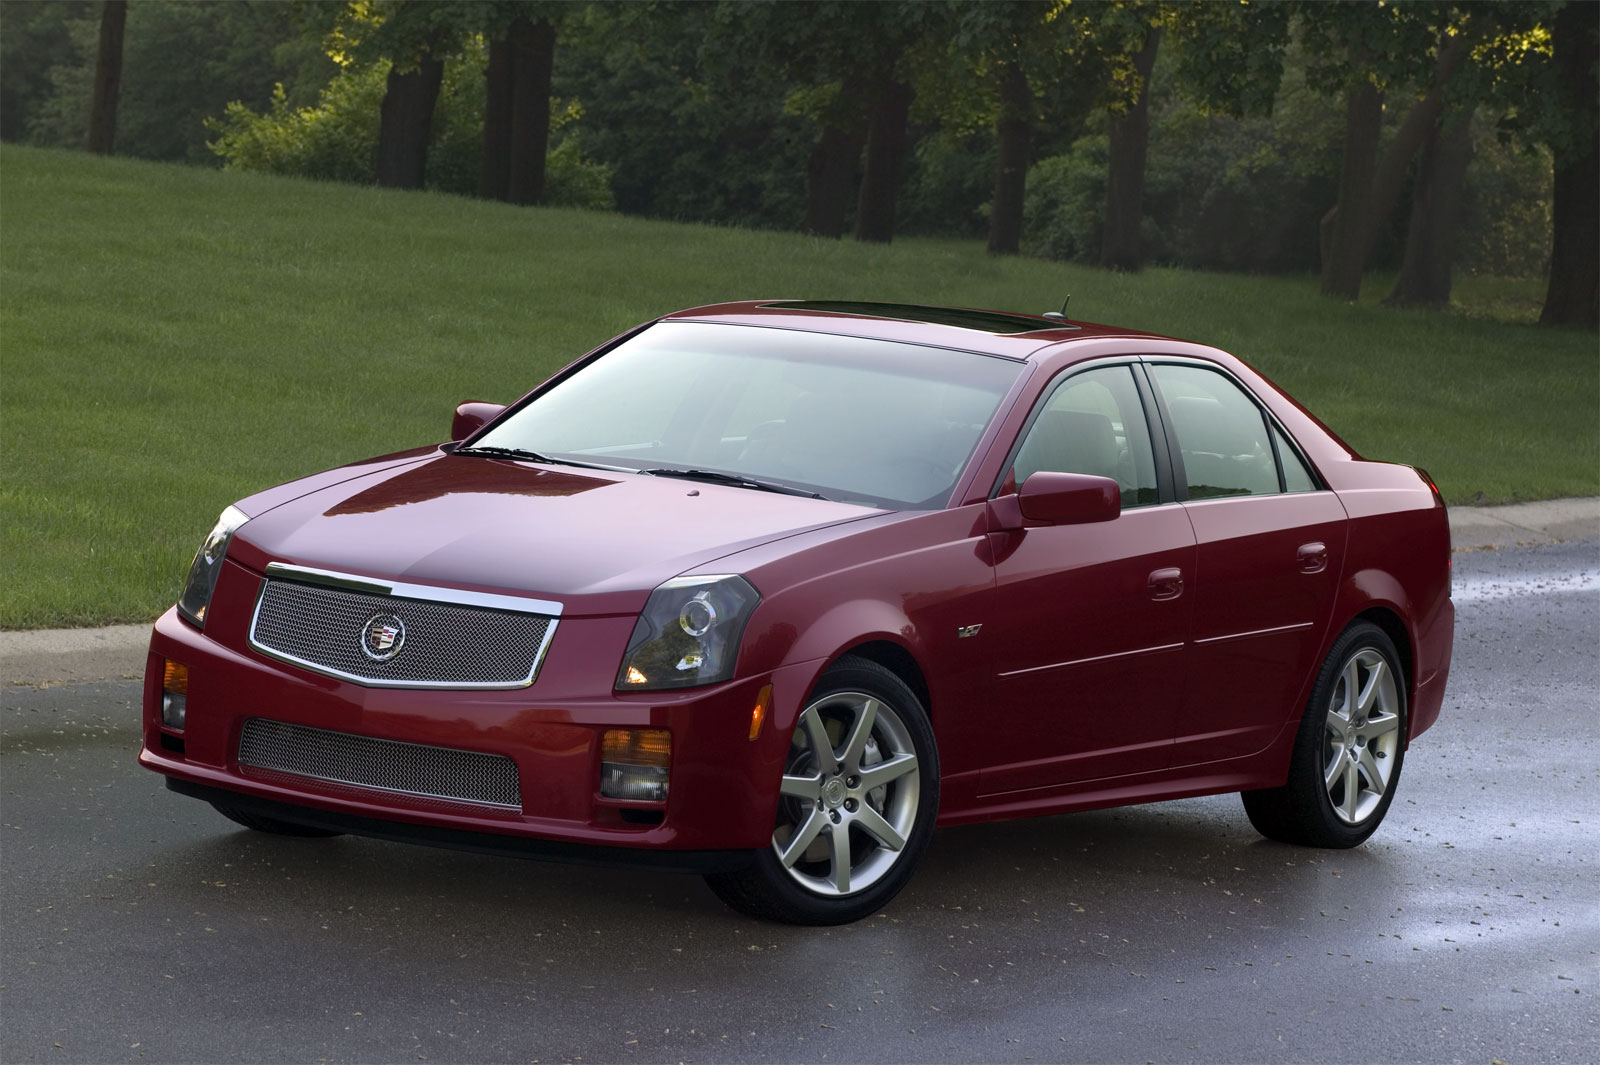 2006 Cadillac Cts V Pictures Cargurus